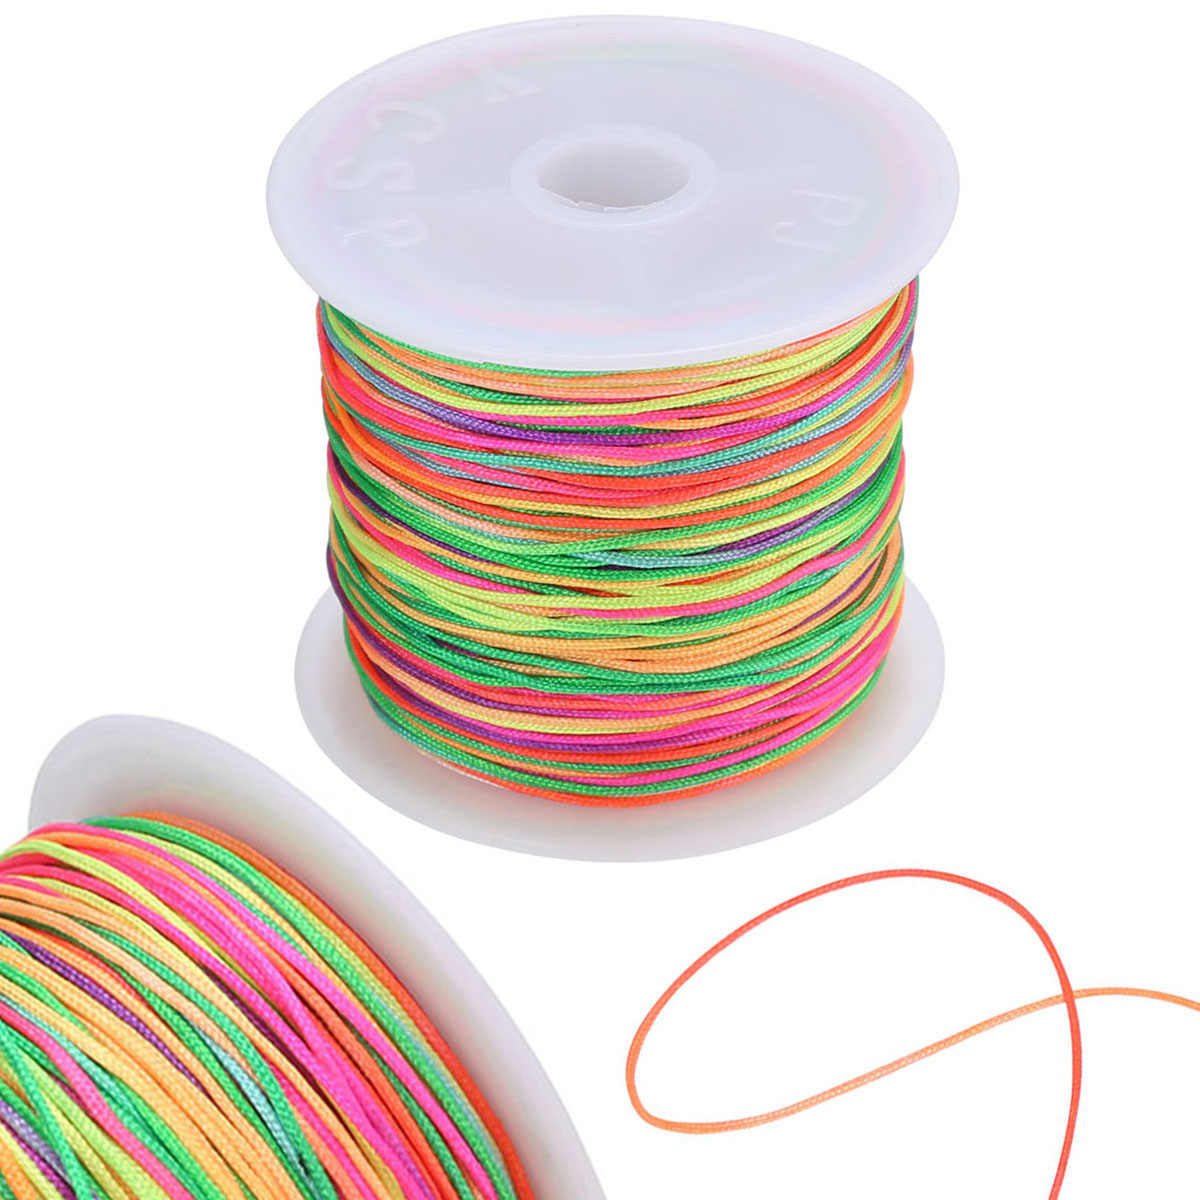 45M/Roll 0.8mm Multicolor Thread Chinese Knot Cord Nylon Cord Macrame Rattail Bracelet Braided String Knitting Yarn Rope